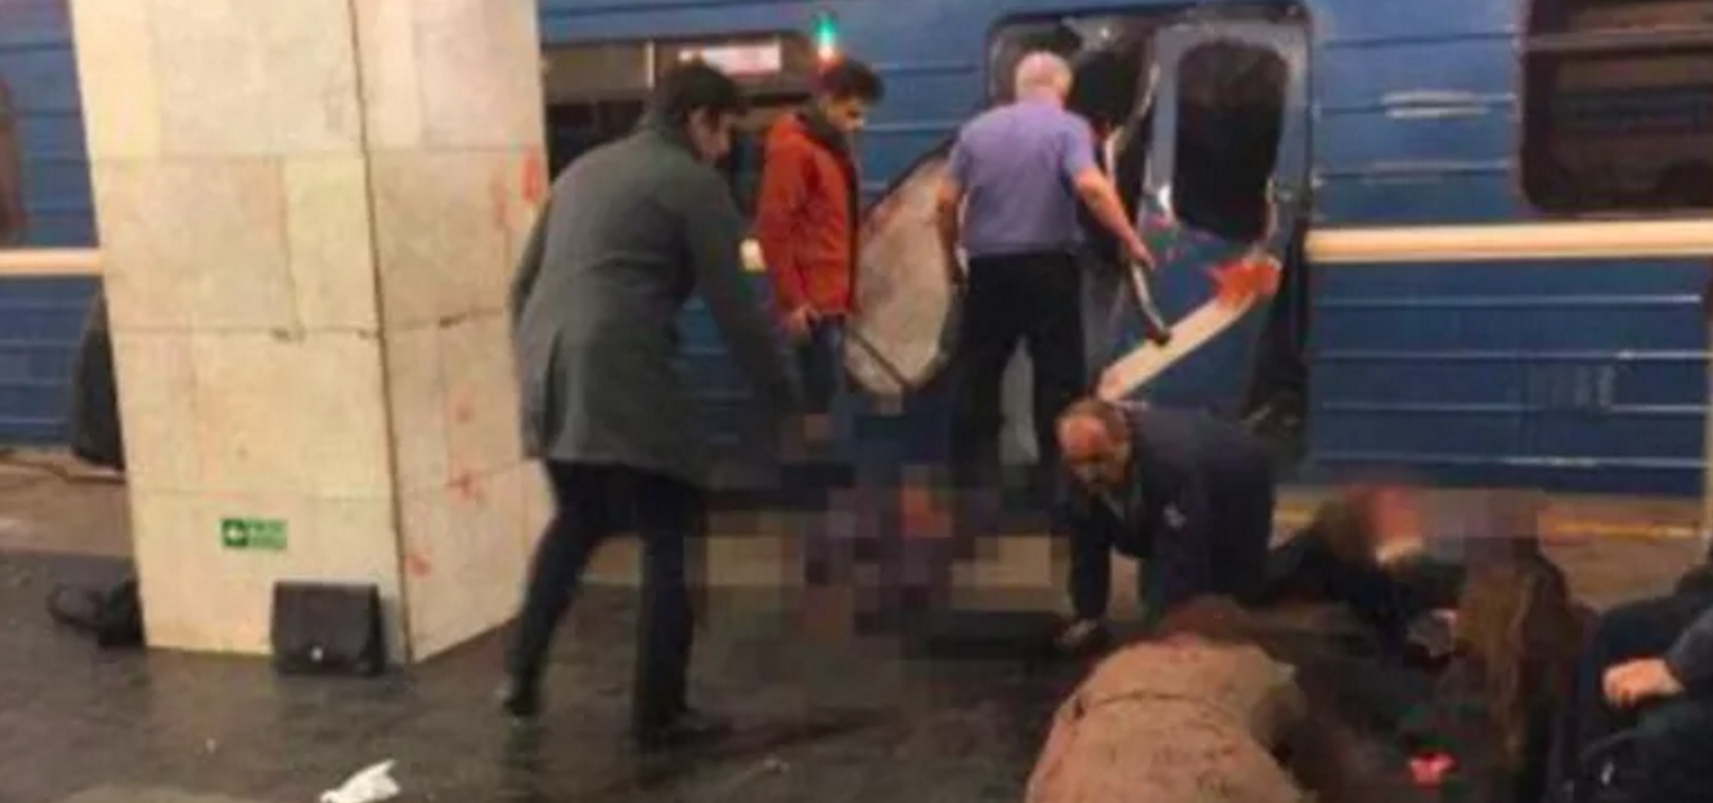 BREAKING: 2 Nail Bombs Explode In Russia, Killing At Least 10